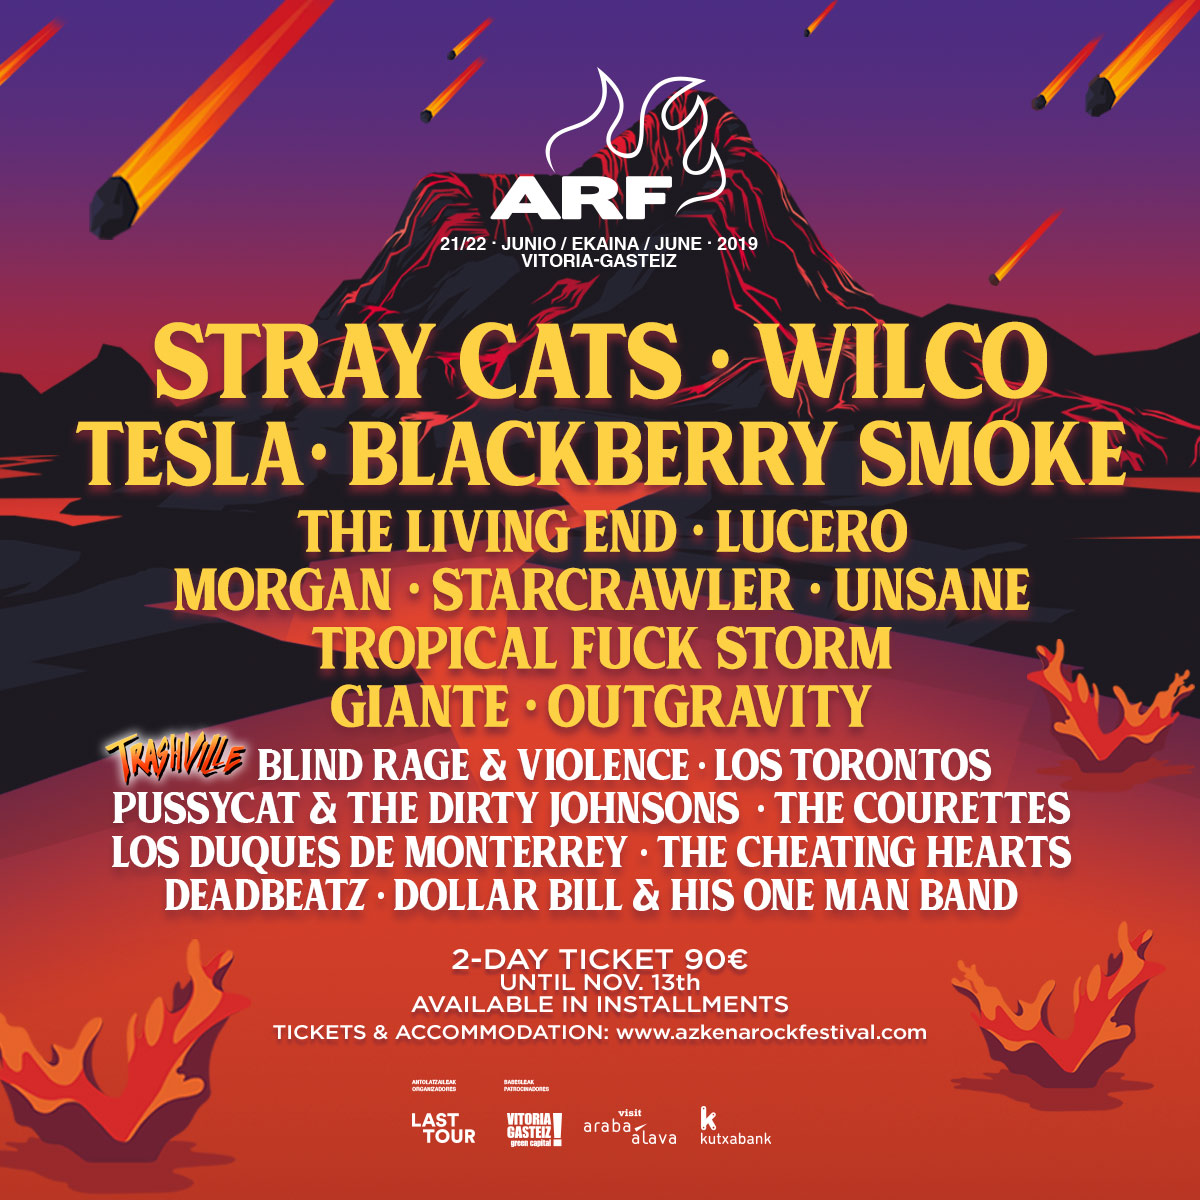 Azkena Rock Festival 2019. Tropical Fuck Storm, Tesla, Unsane, Blackberry Smoke, Stray Cats, Starcrawler... - Página 2 CARTEL_ARF19